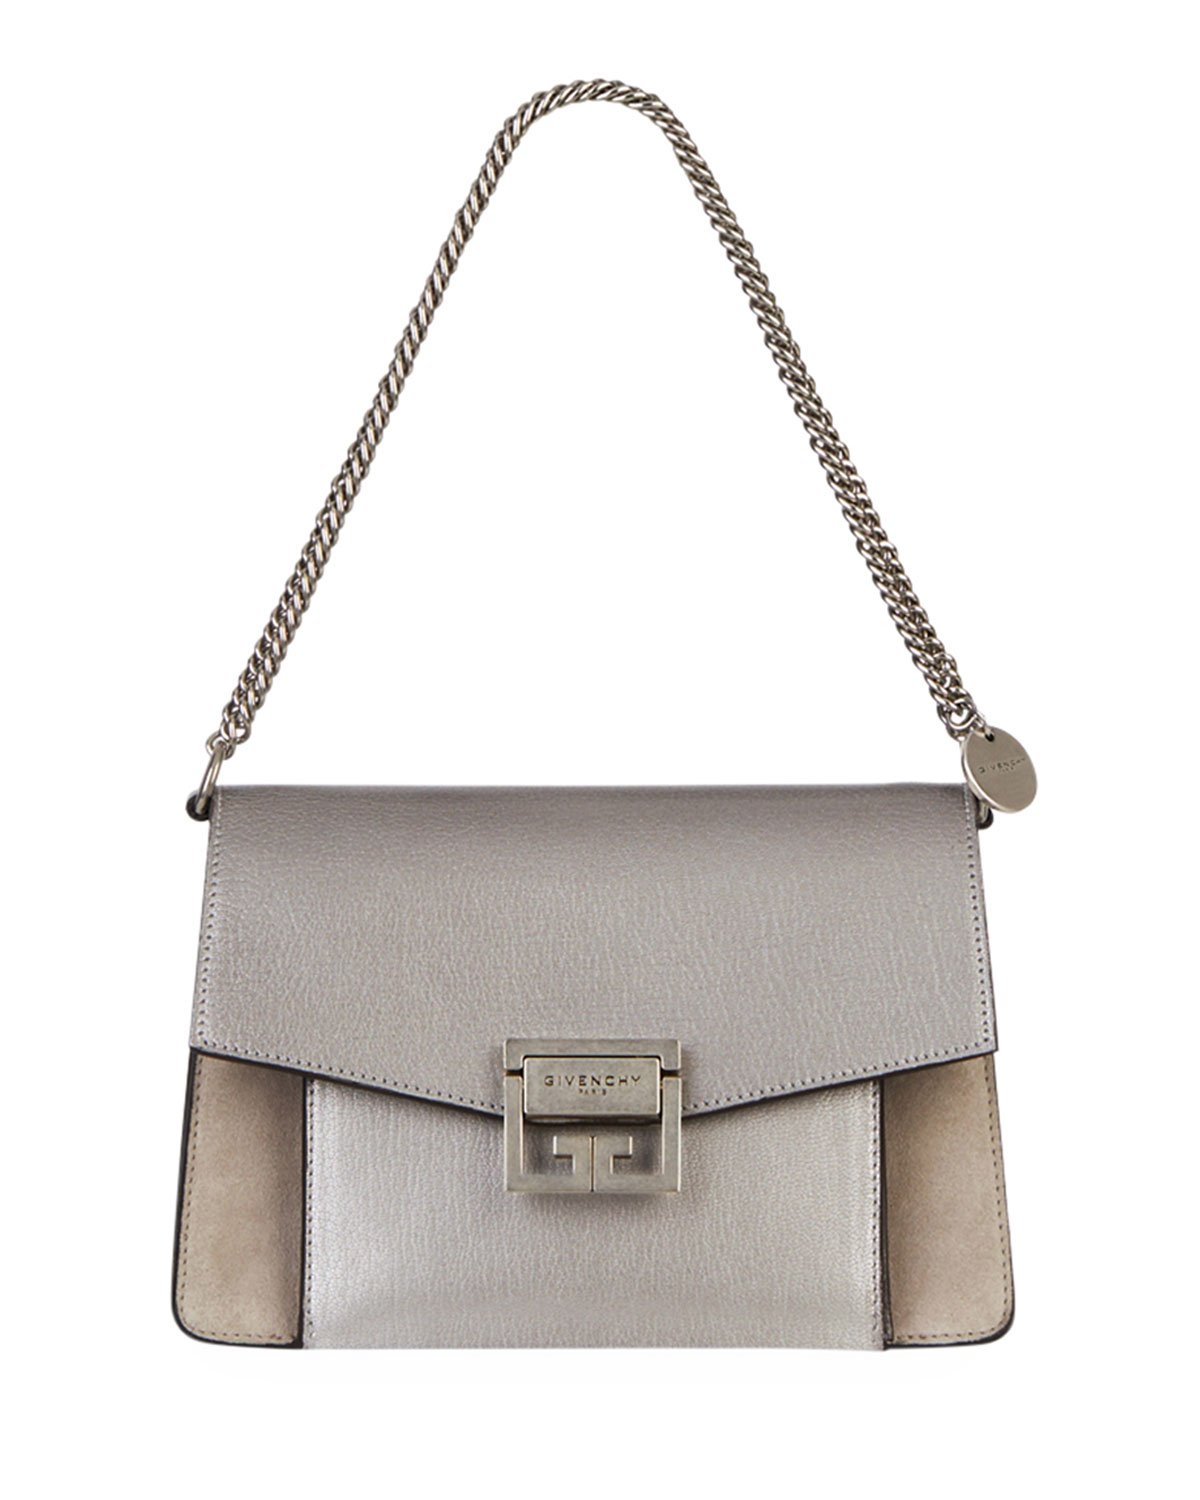 f97a1e34e32d Givenchy GV3 Small Metallic Leather   Suede Shoulder Bag